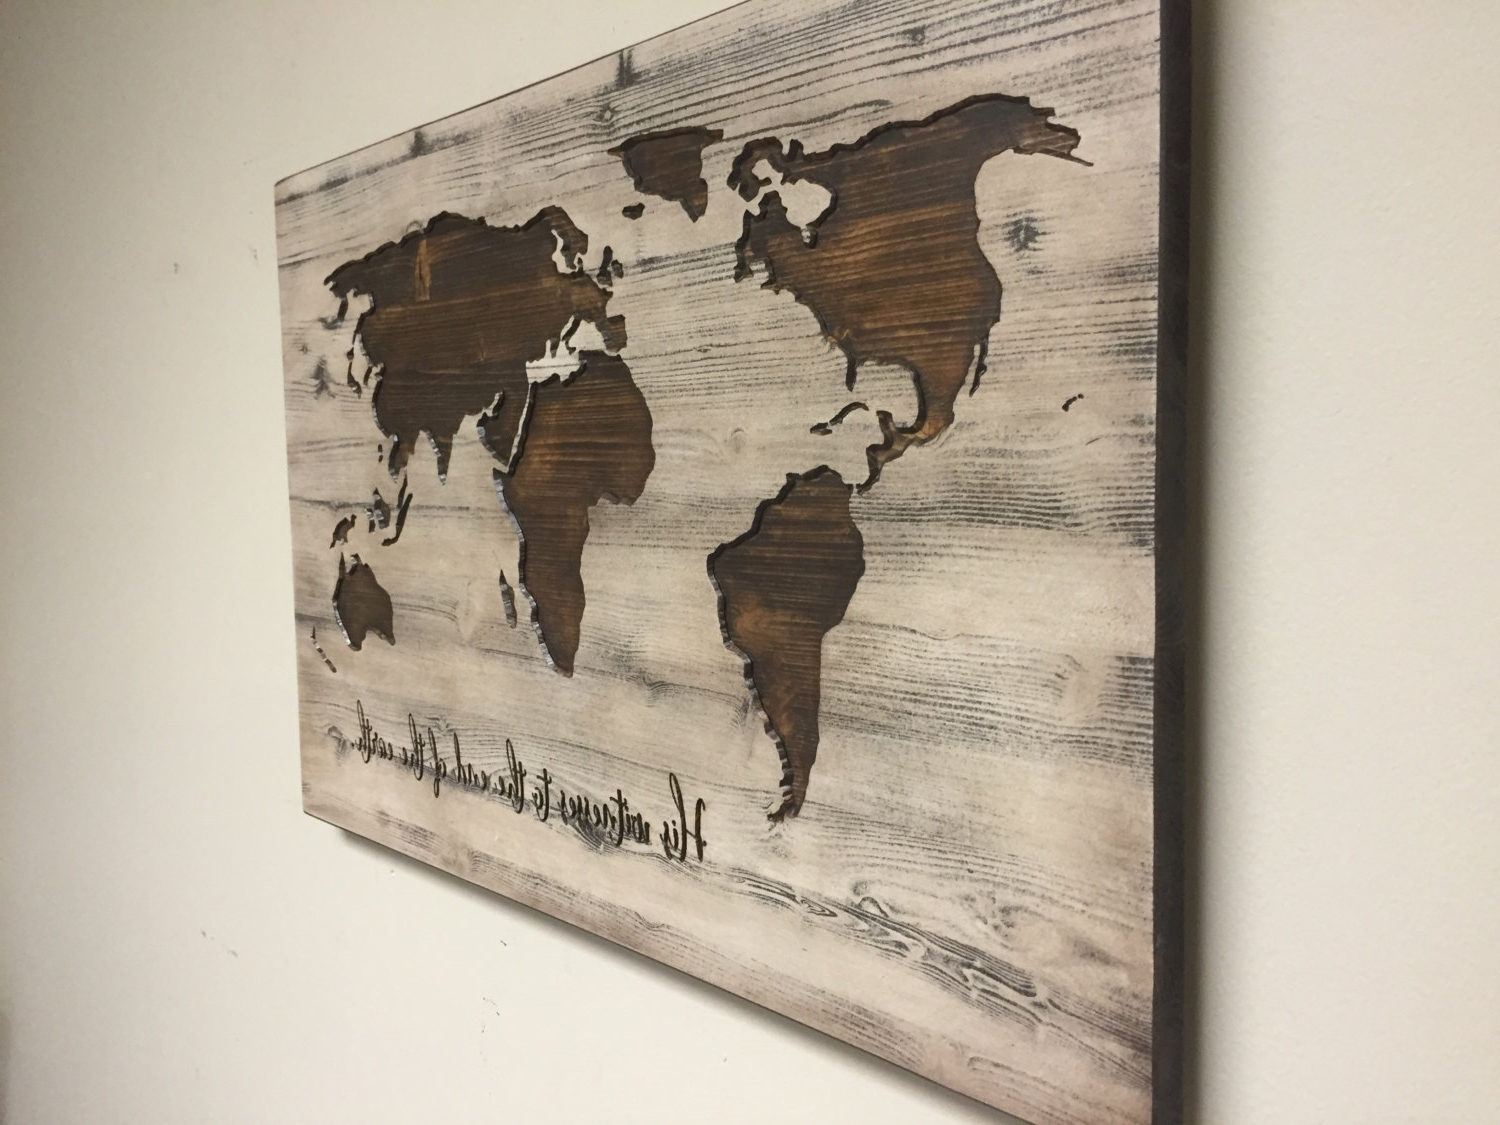 Newest Art Vintage Maps Wall Art Large Vintage Wall Art Old World Map At In Old World Map Wall Art (View 6 of 15)